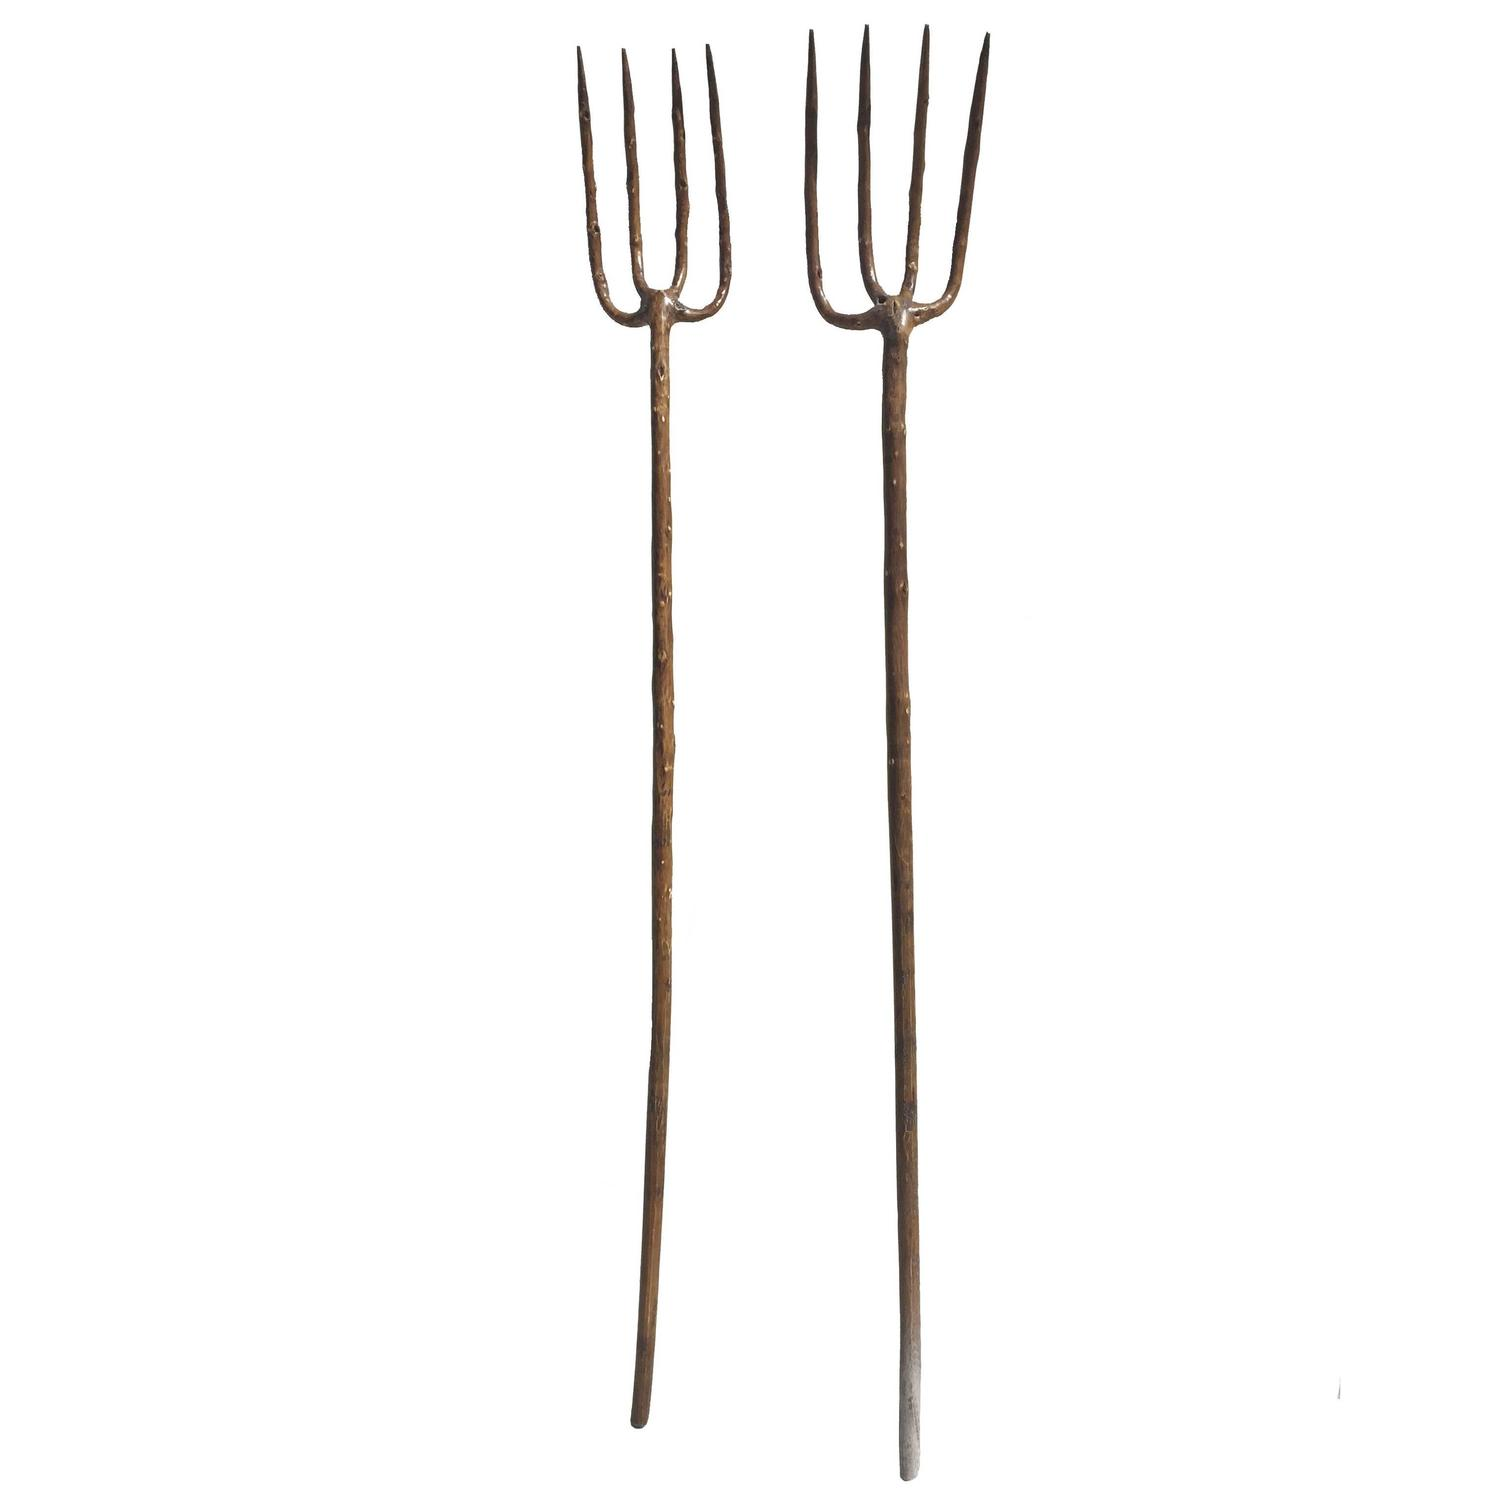 Set of two farm tools wooden pitchforks for sale at 1stdibs for Pitchfork tool for sale